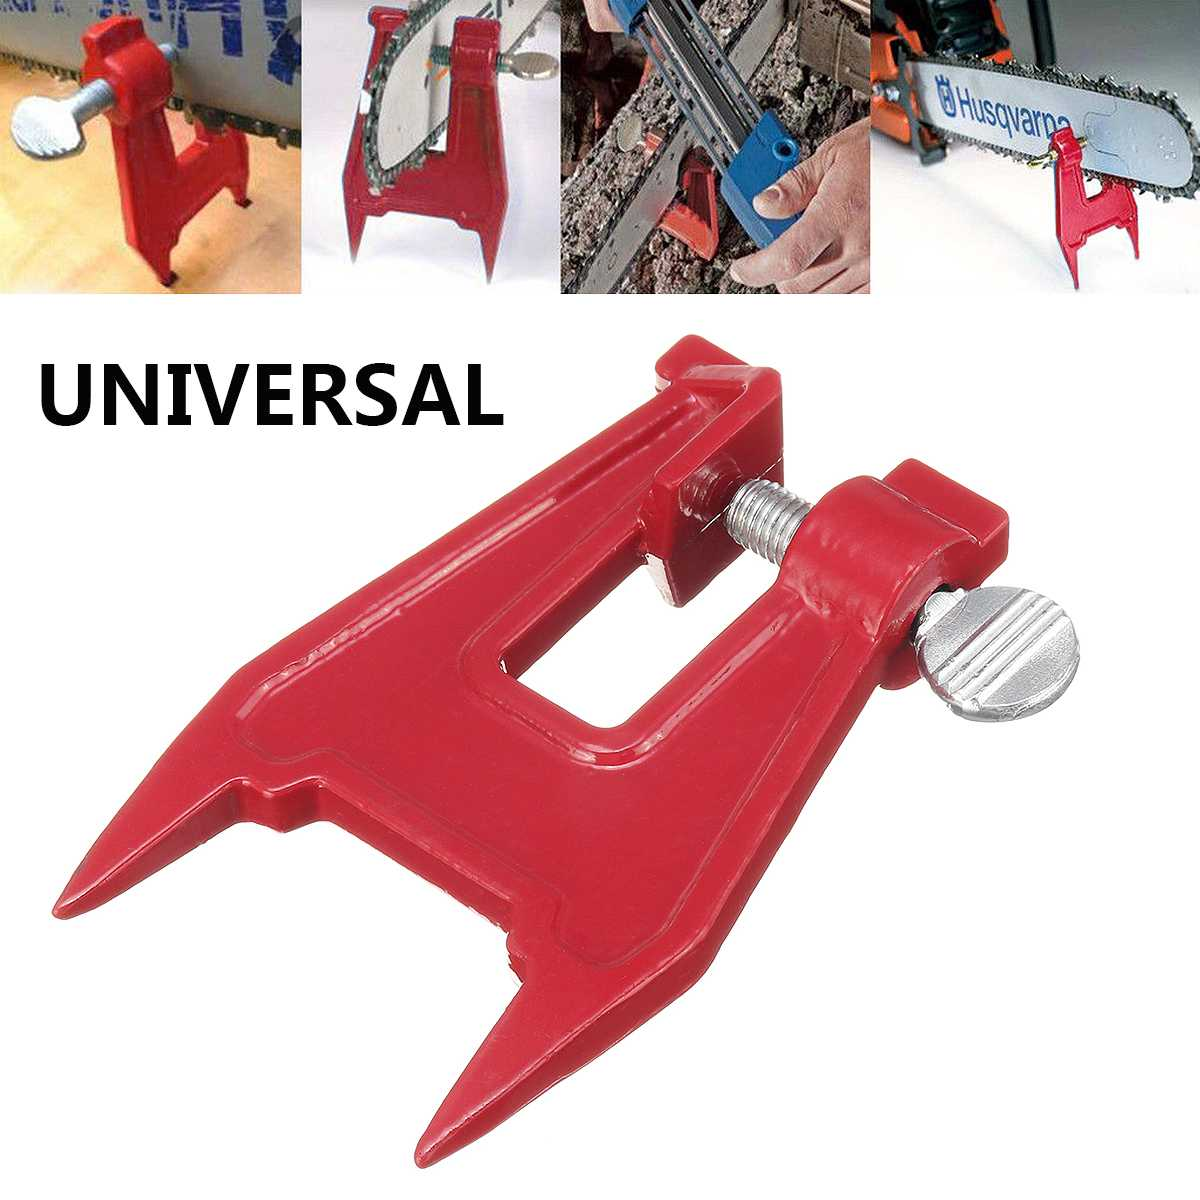 Chainsaw Chain Stump Vice Sharpening Filing Vice for Husqvarna Garden Power Tool Parts Bar Clamp Holder for Jonsered for StihlChainsaw Chain Stump Vice Sharpening Filing Vice for Husqvarna Garden Power Tool Parts Bar Clamp Holder for Jonsered for Stihl